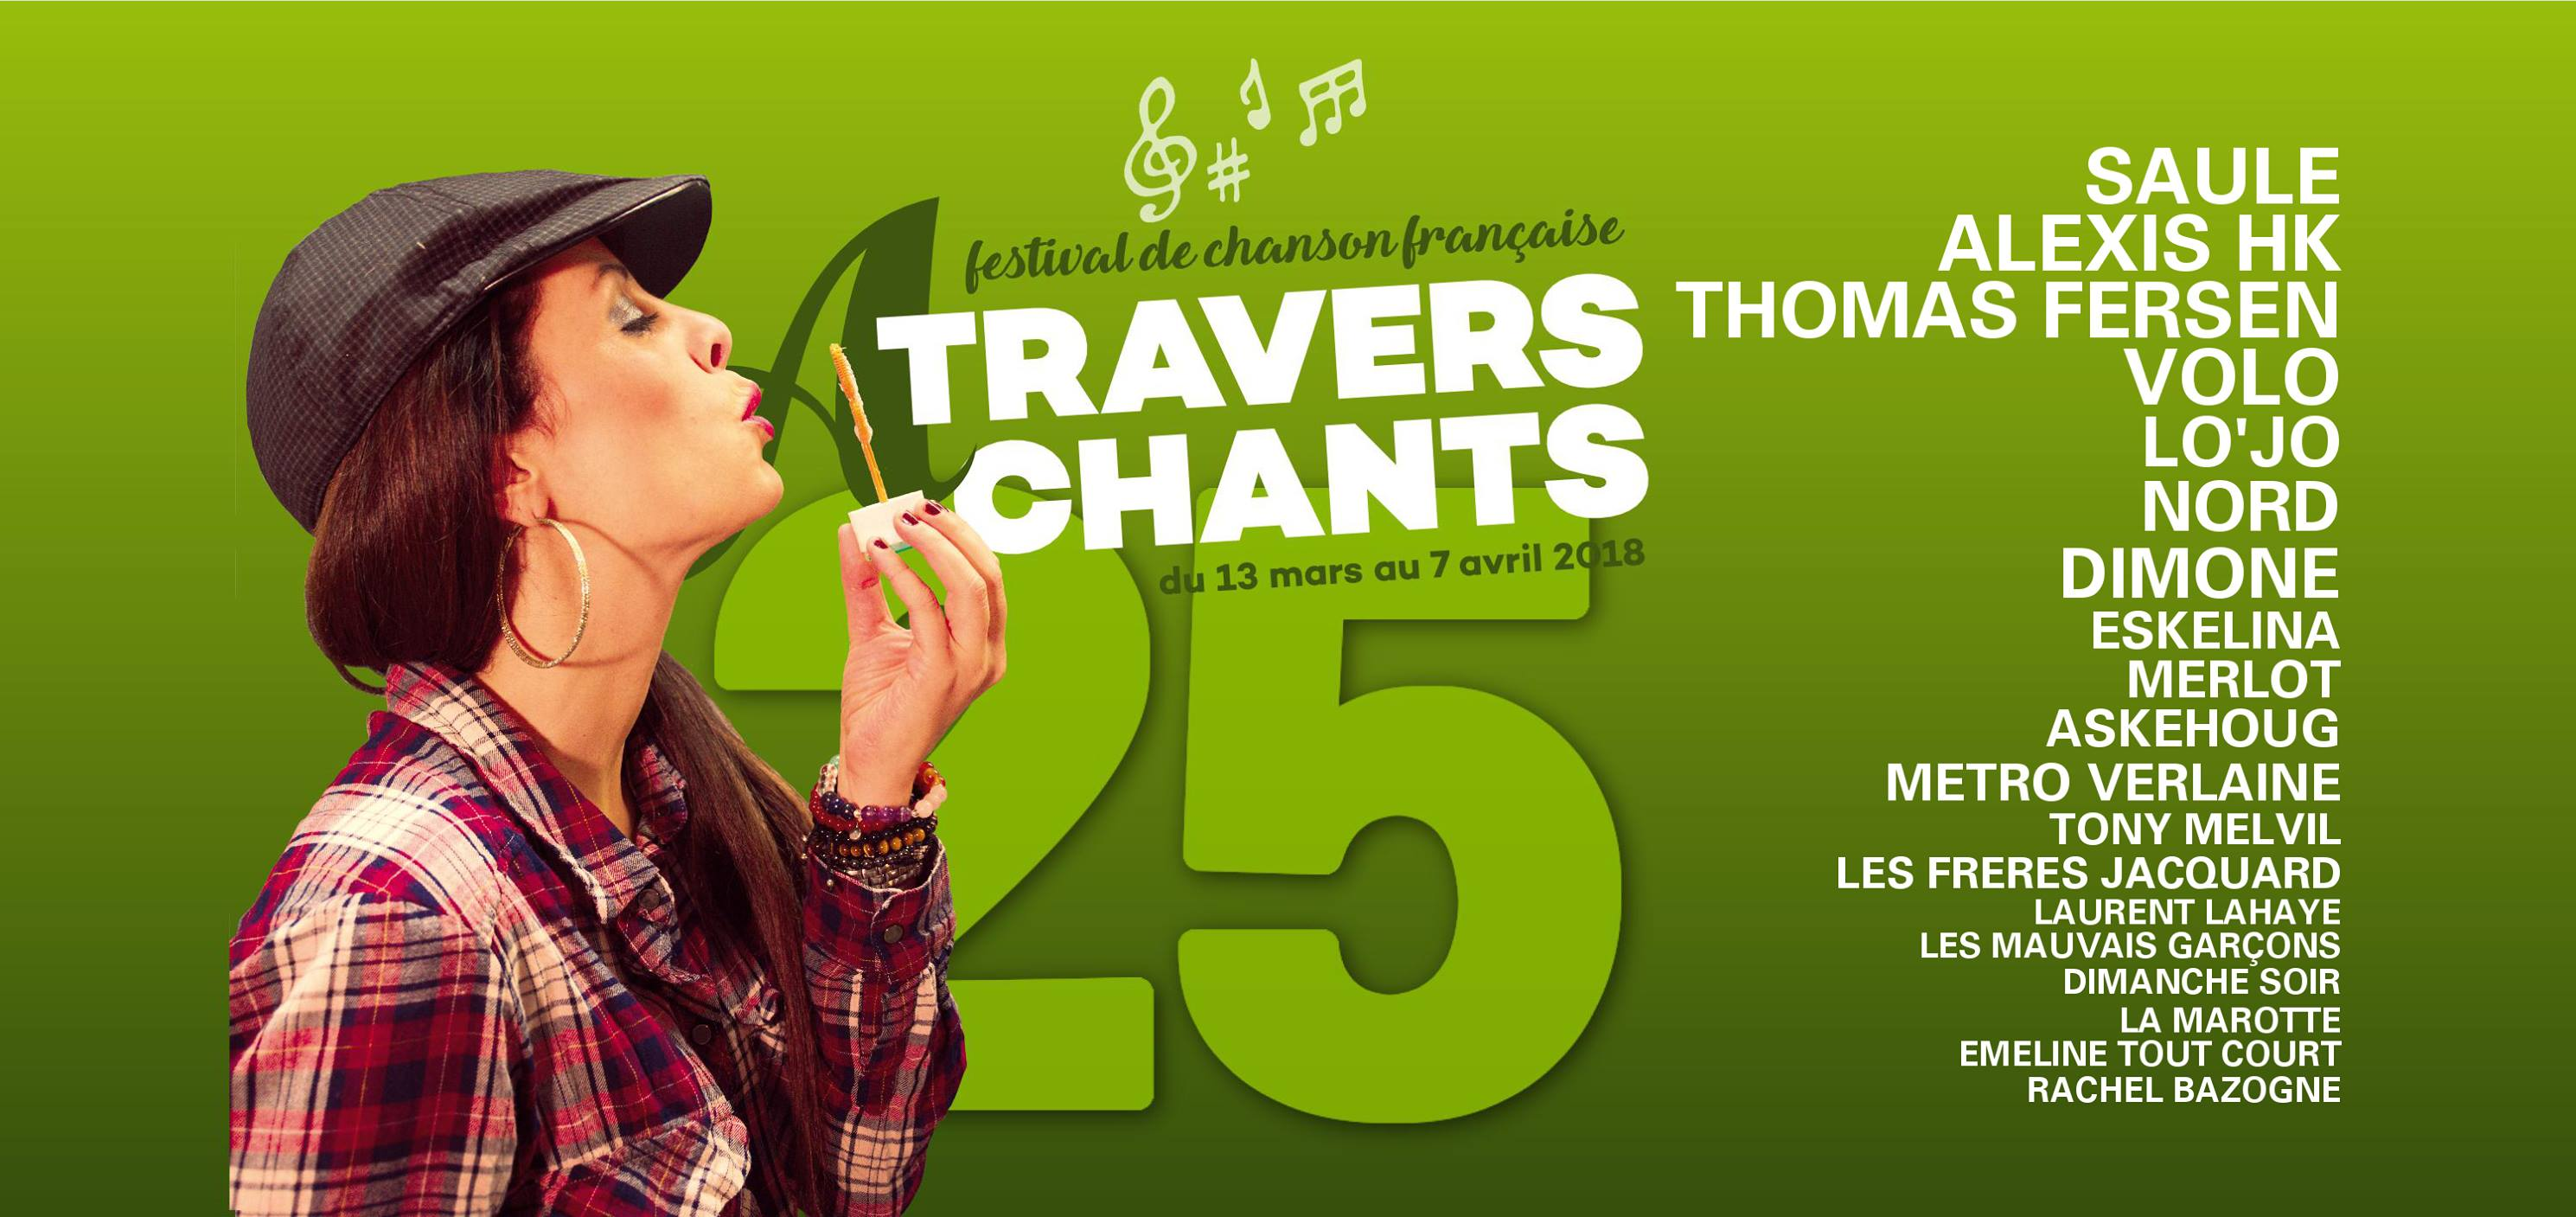 Festival A Travers Chants